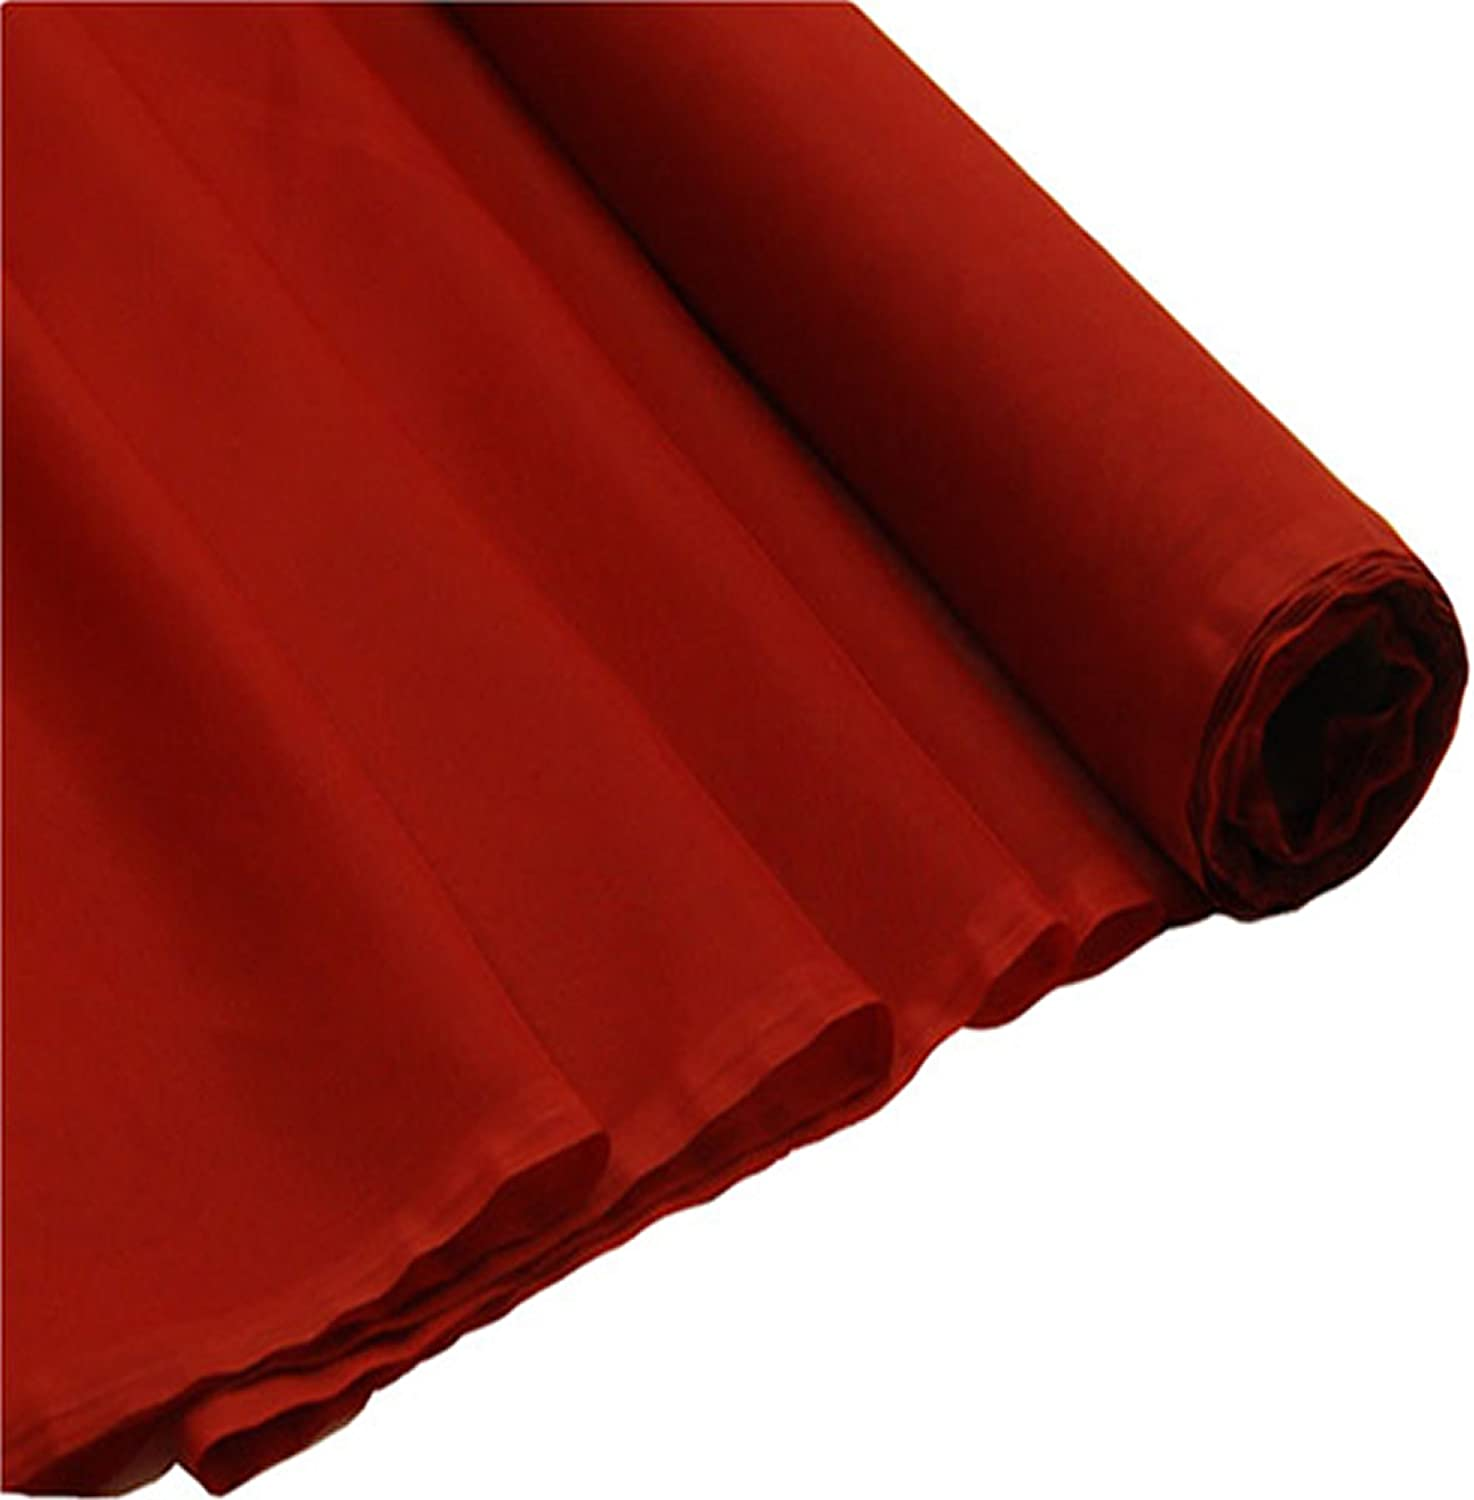 150CM Sold By the Metre 58 Wide Plain Woven Voile Net Curtain Fabric Finished In Brick Red